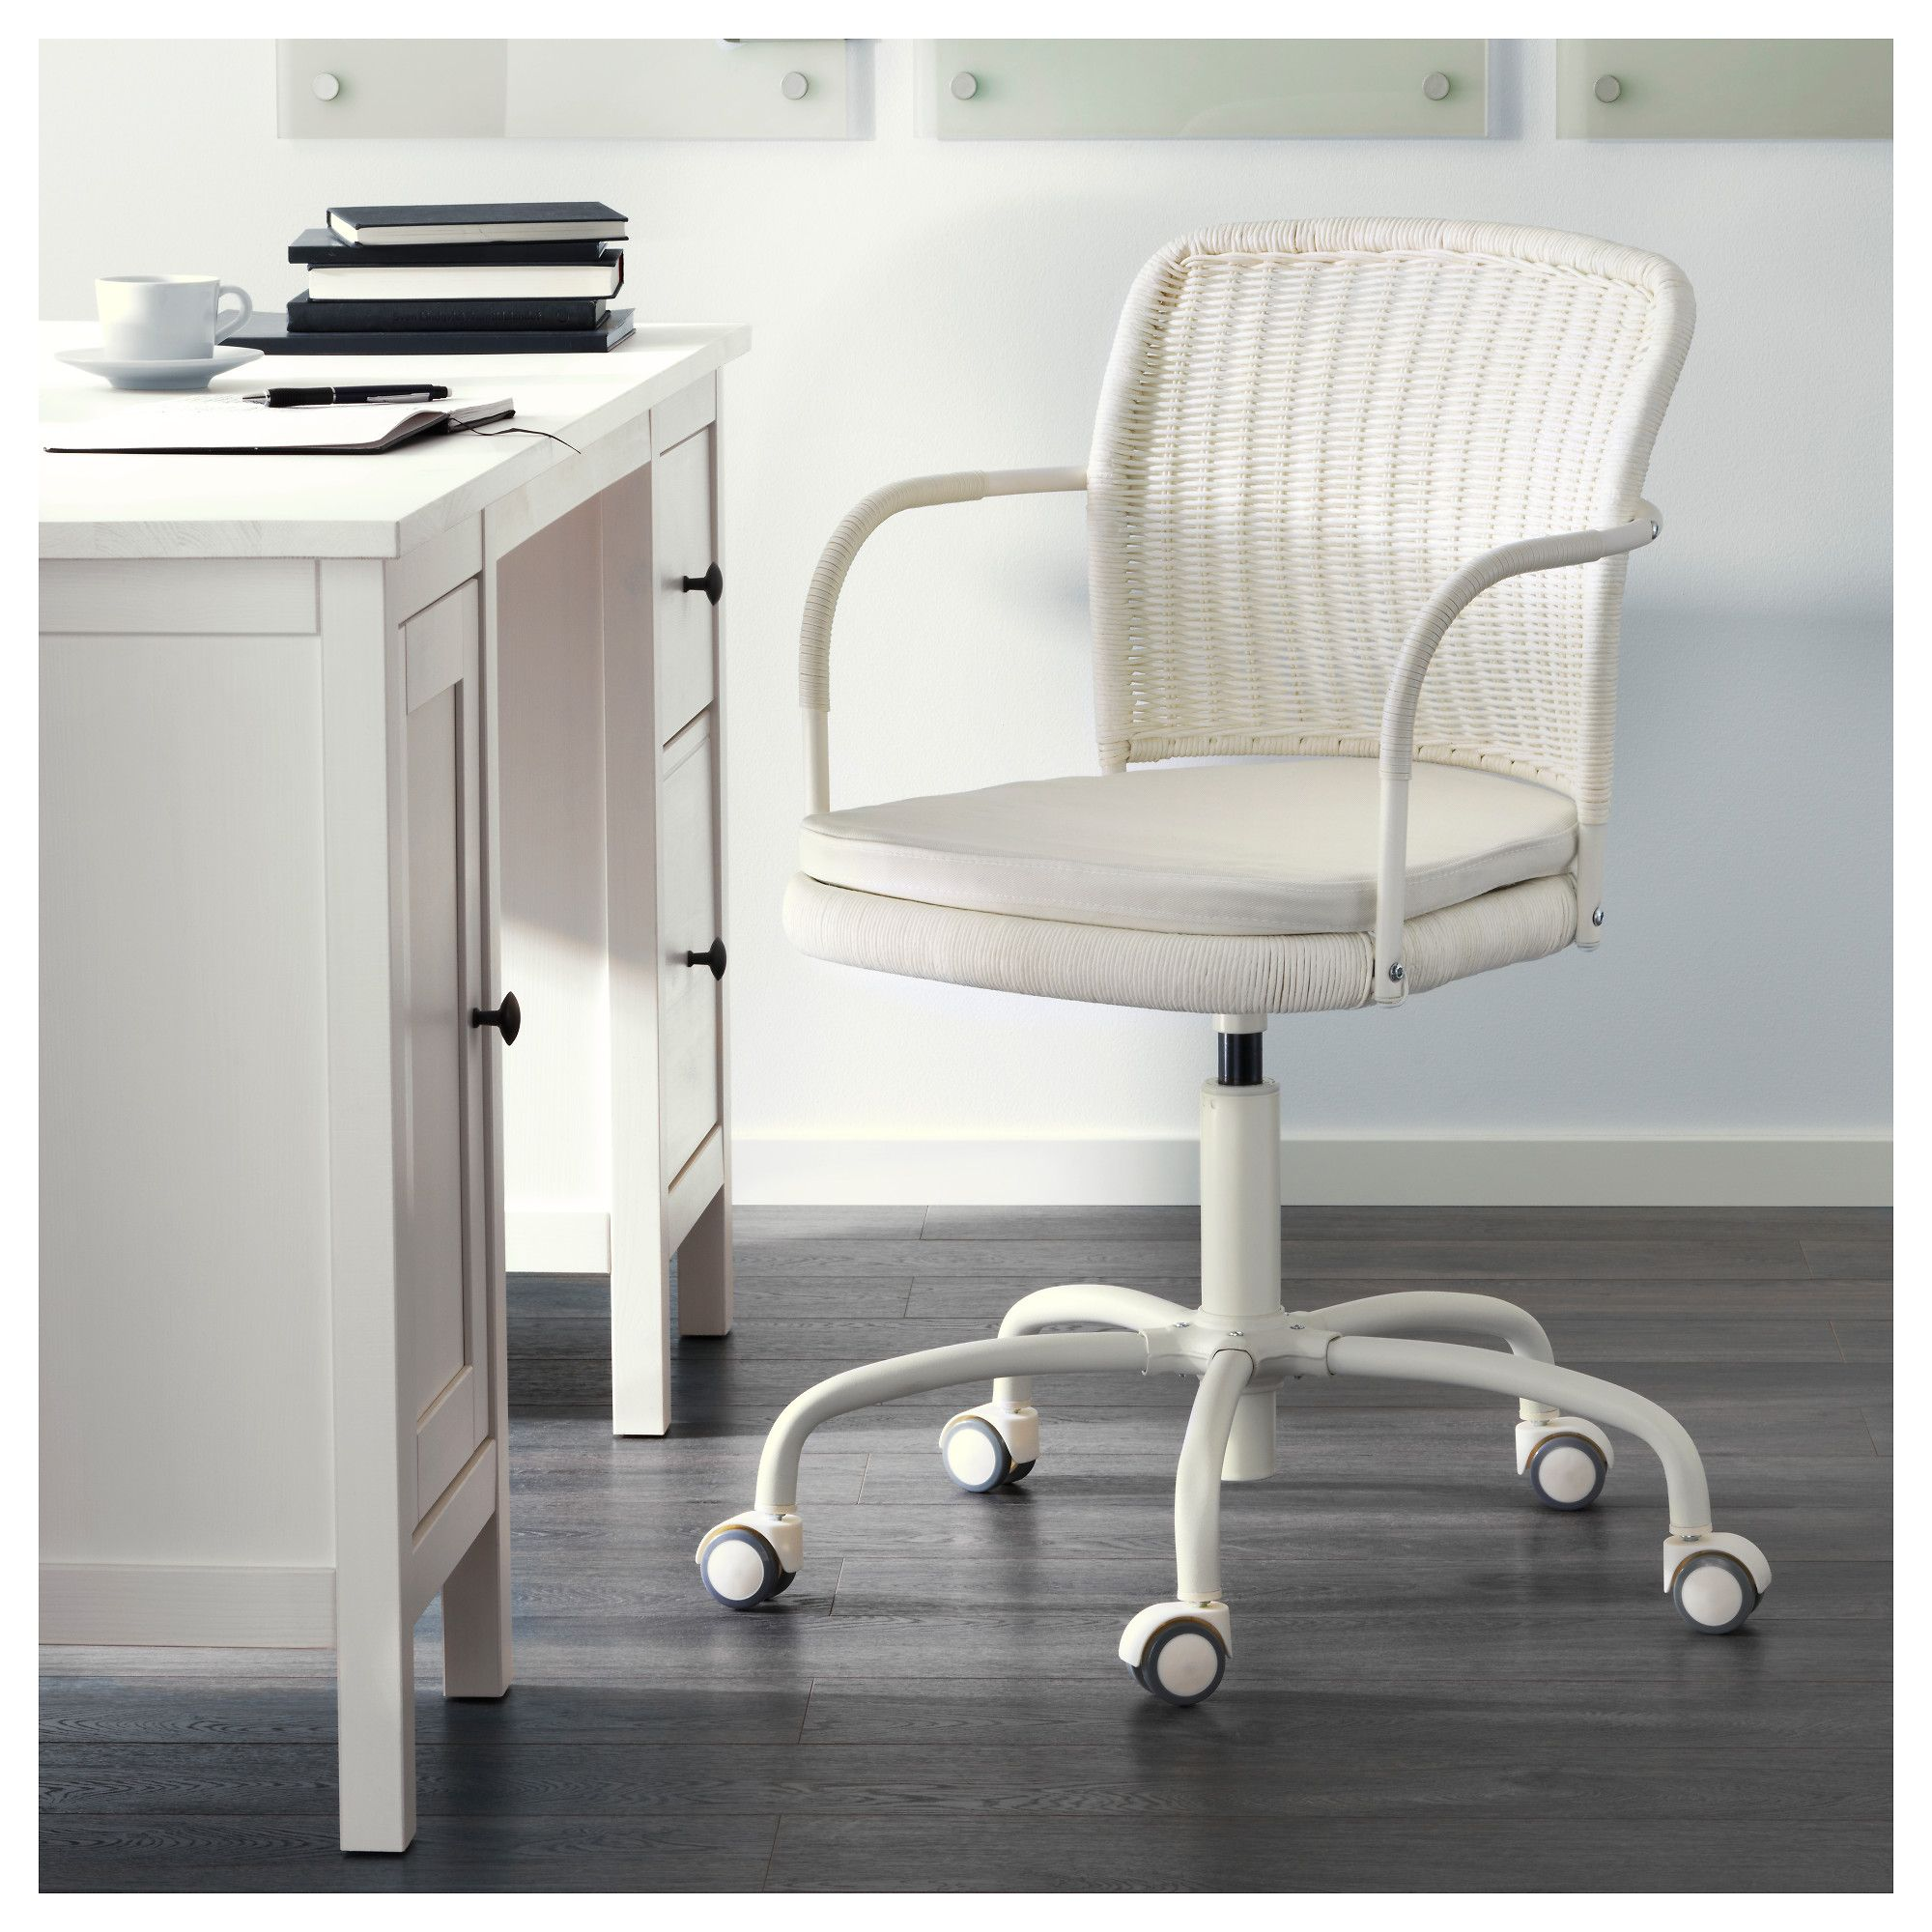 the area desk furniture finding office workspace for chair with rug and also right ideas design wood ikea floorings